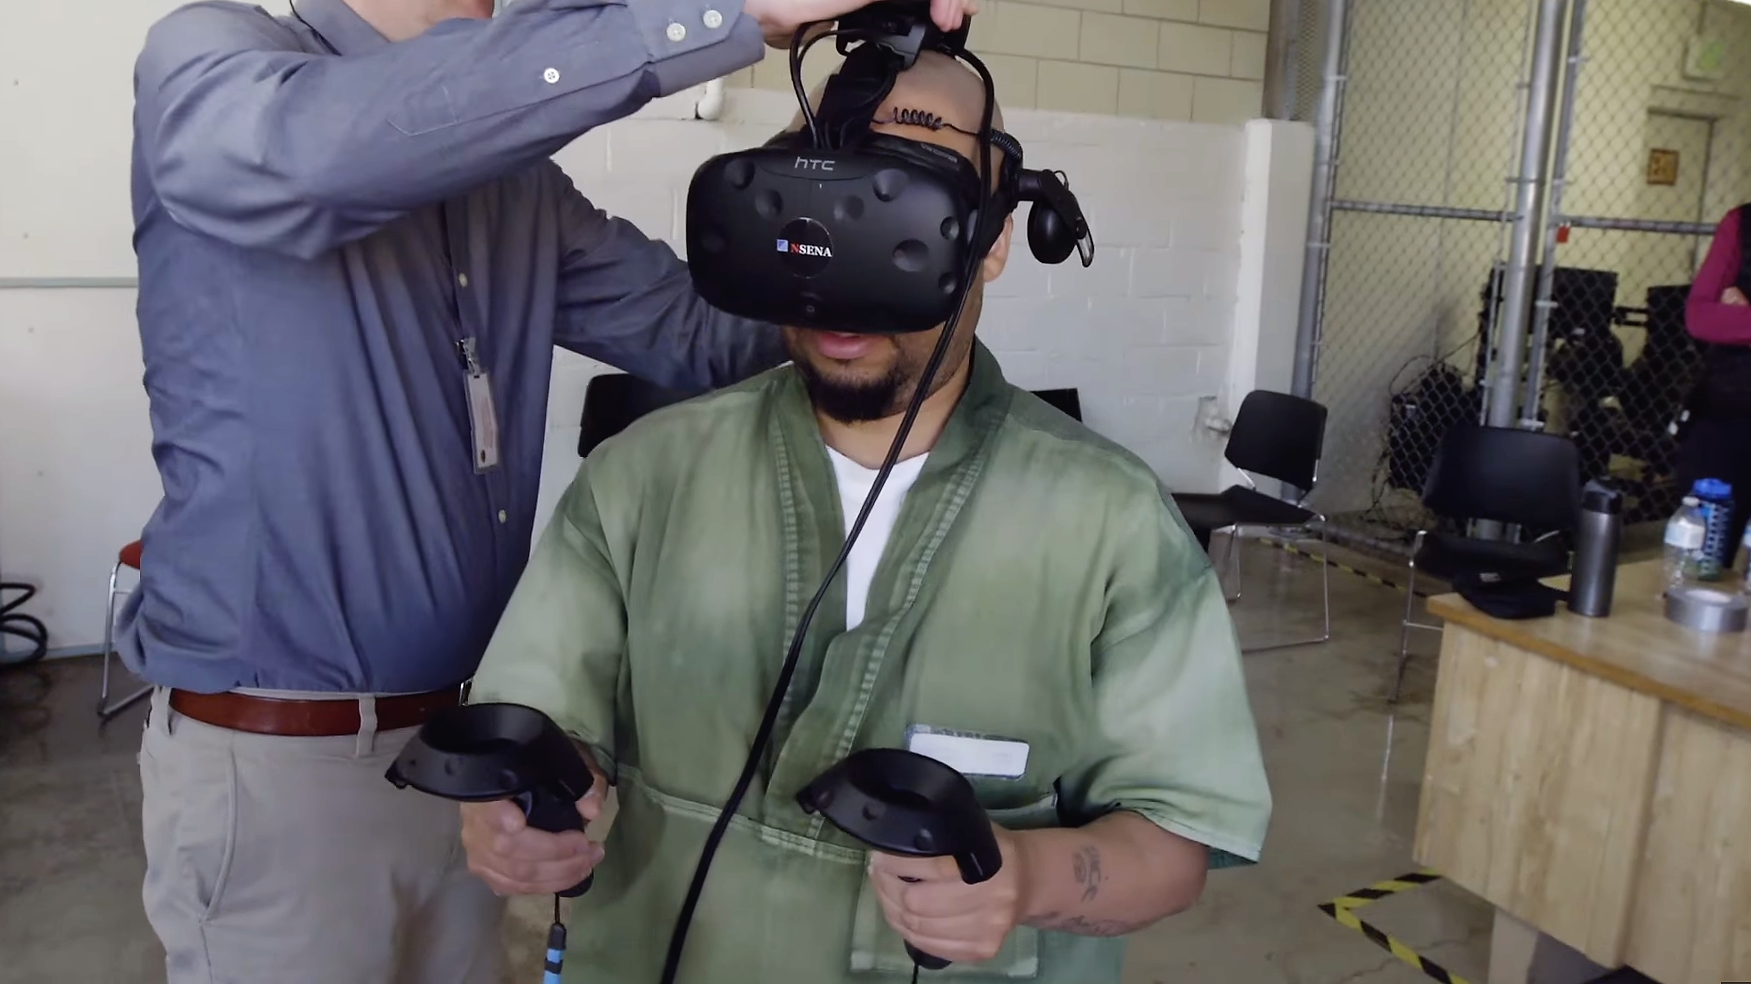 VR Prepares Colorado Inmates for the Real World | All3DP